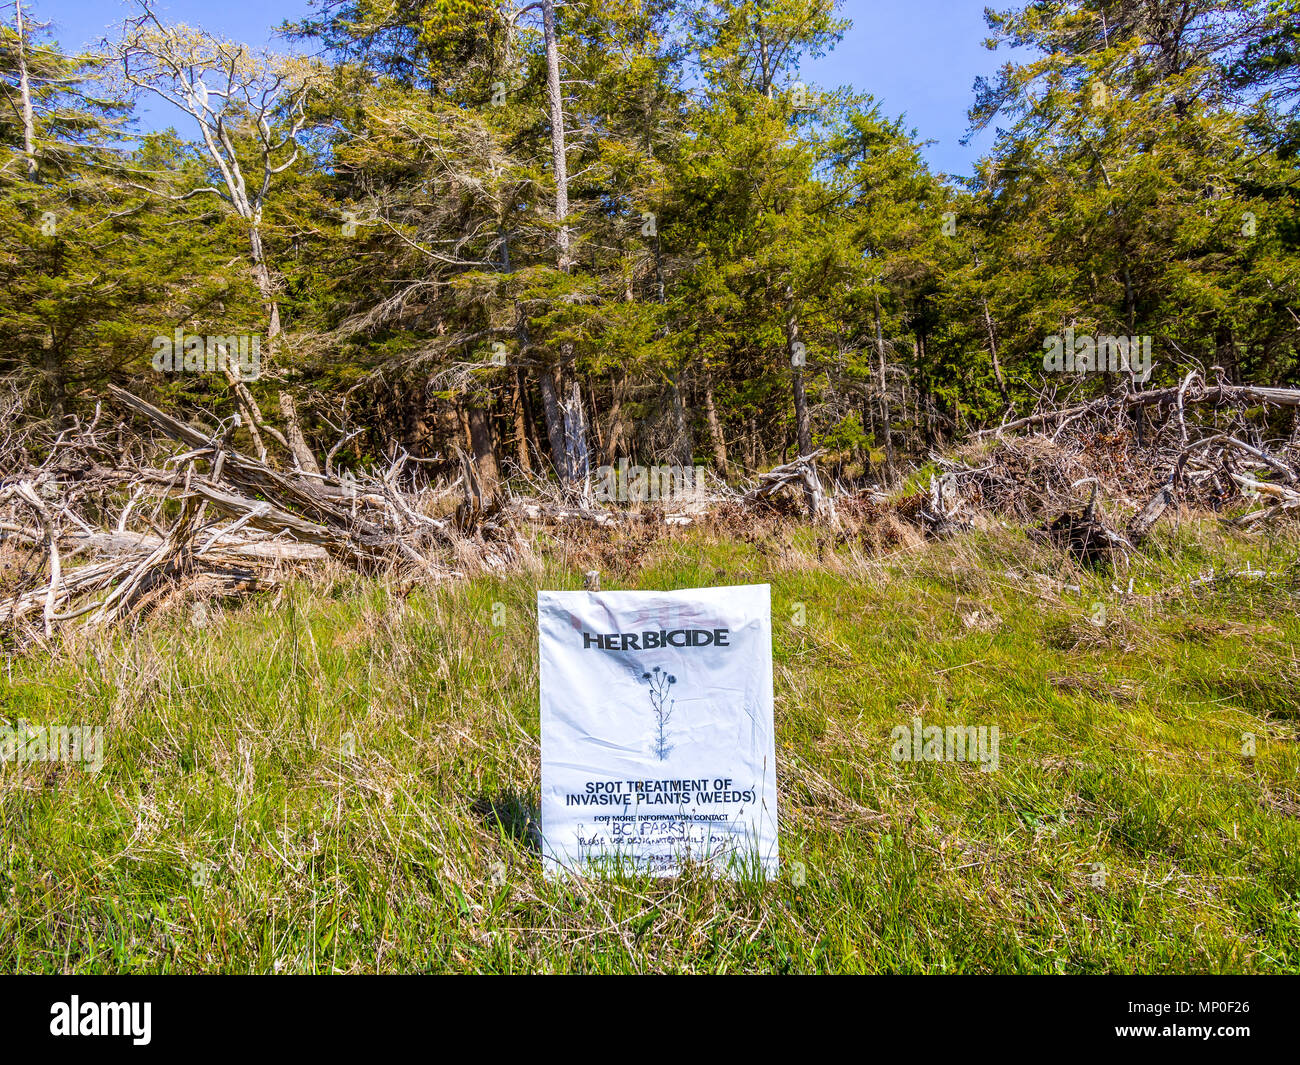 Herbicide warning notice on sprayed weeds, Helliwell Provincial Park, Hornby Island, BC, Canada. - Stock Image